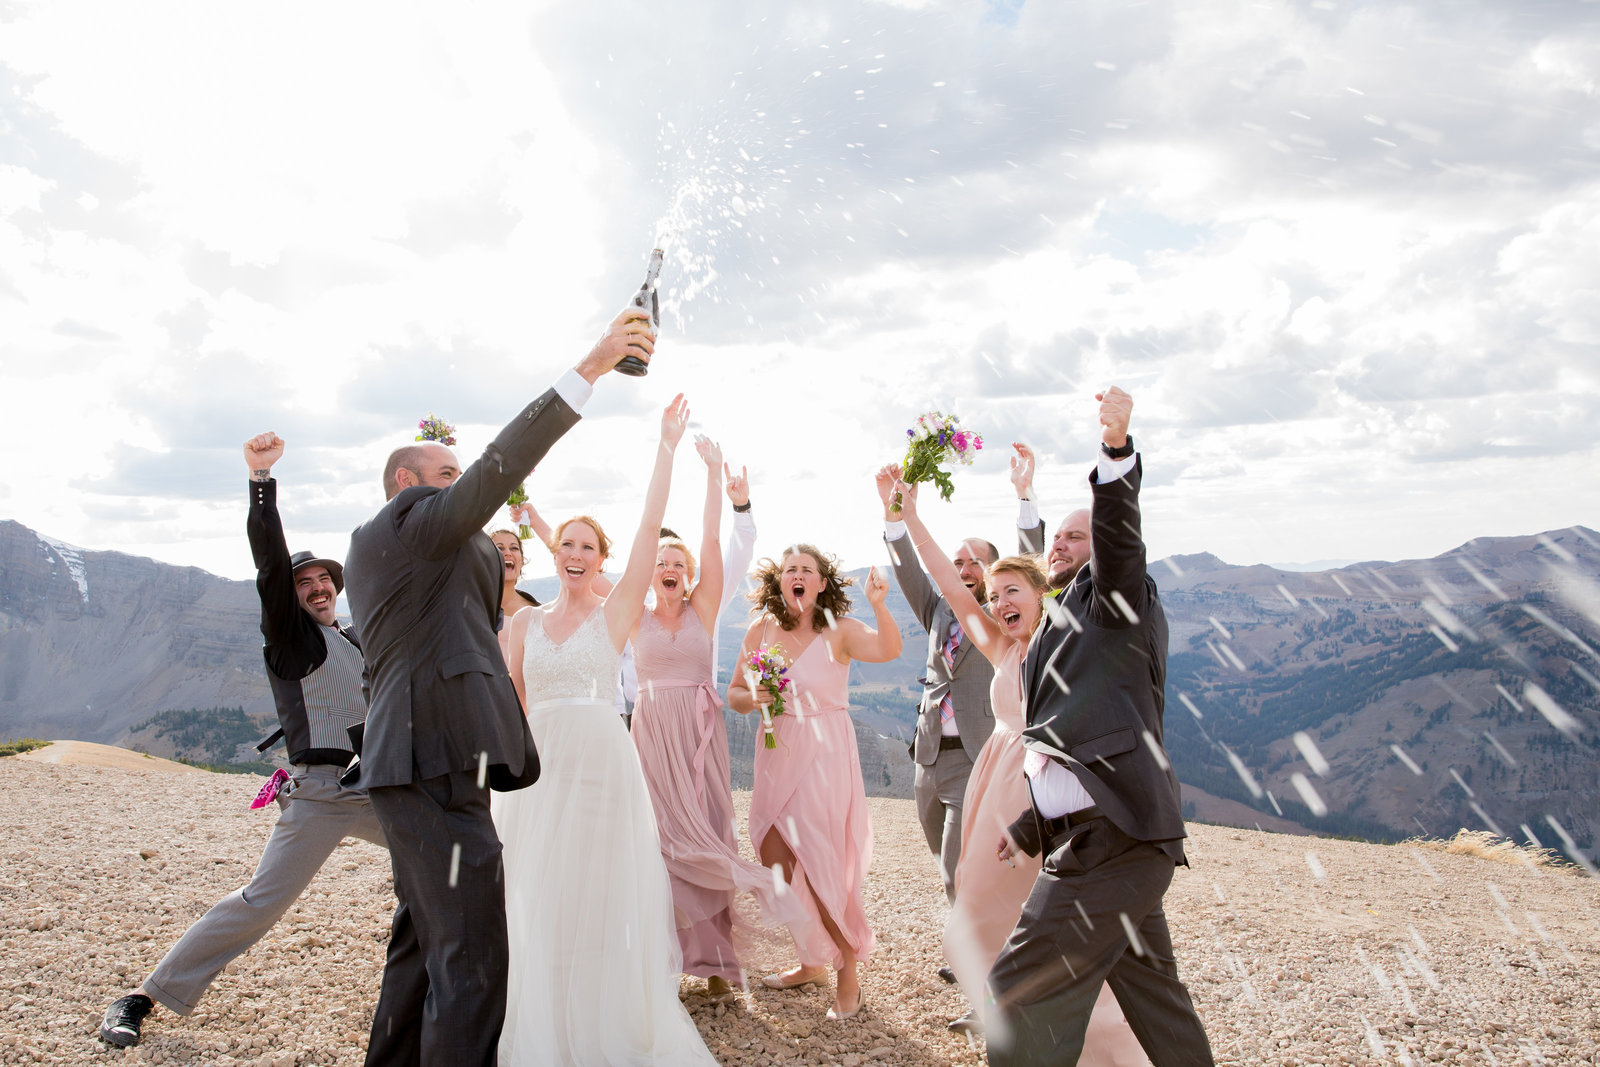 Jackson Hole Ski Resort wedding bridal party celebrating